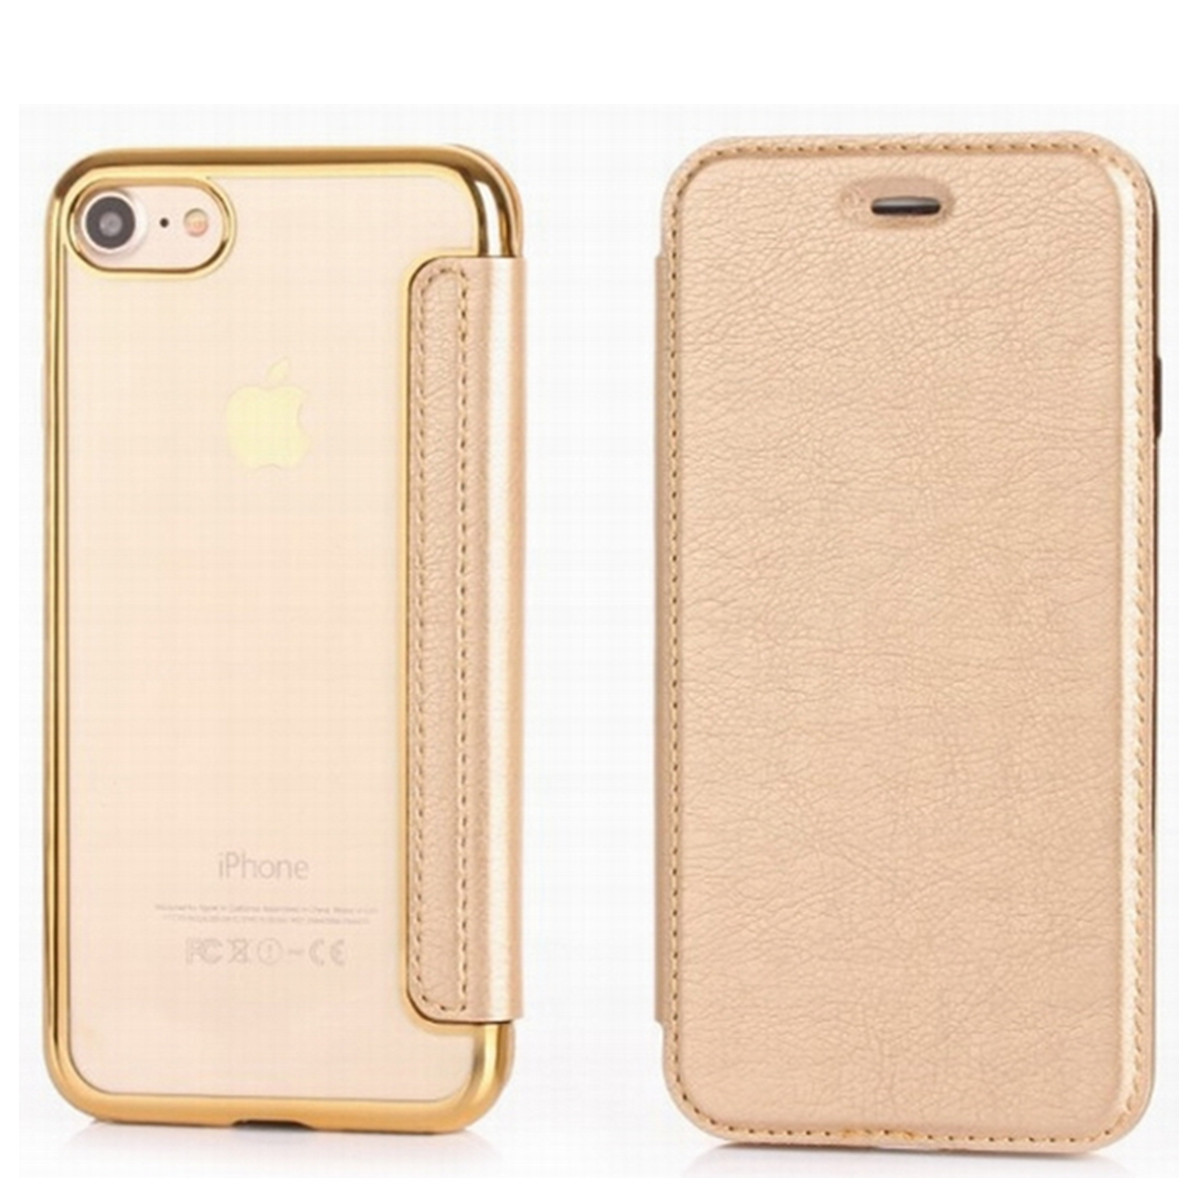 Luxury Phone Case Untuk iPhone 5 5 S SE Transparan Plating TPU Balik Kulit Soft Cover Kasus Untuk iPhone X XS 8 7 Ditambah 6 6 s Plus